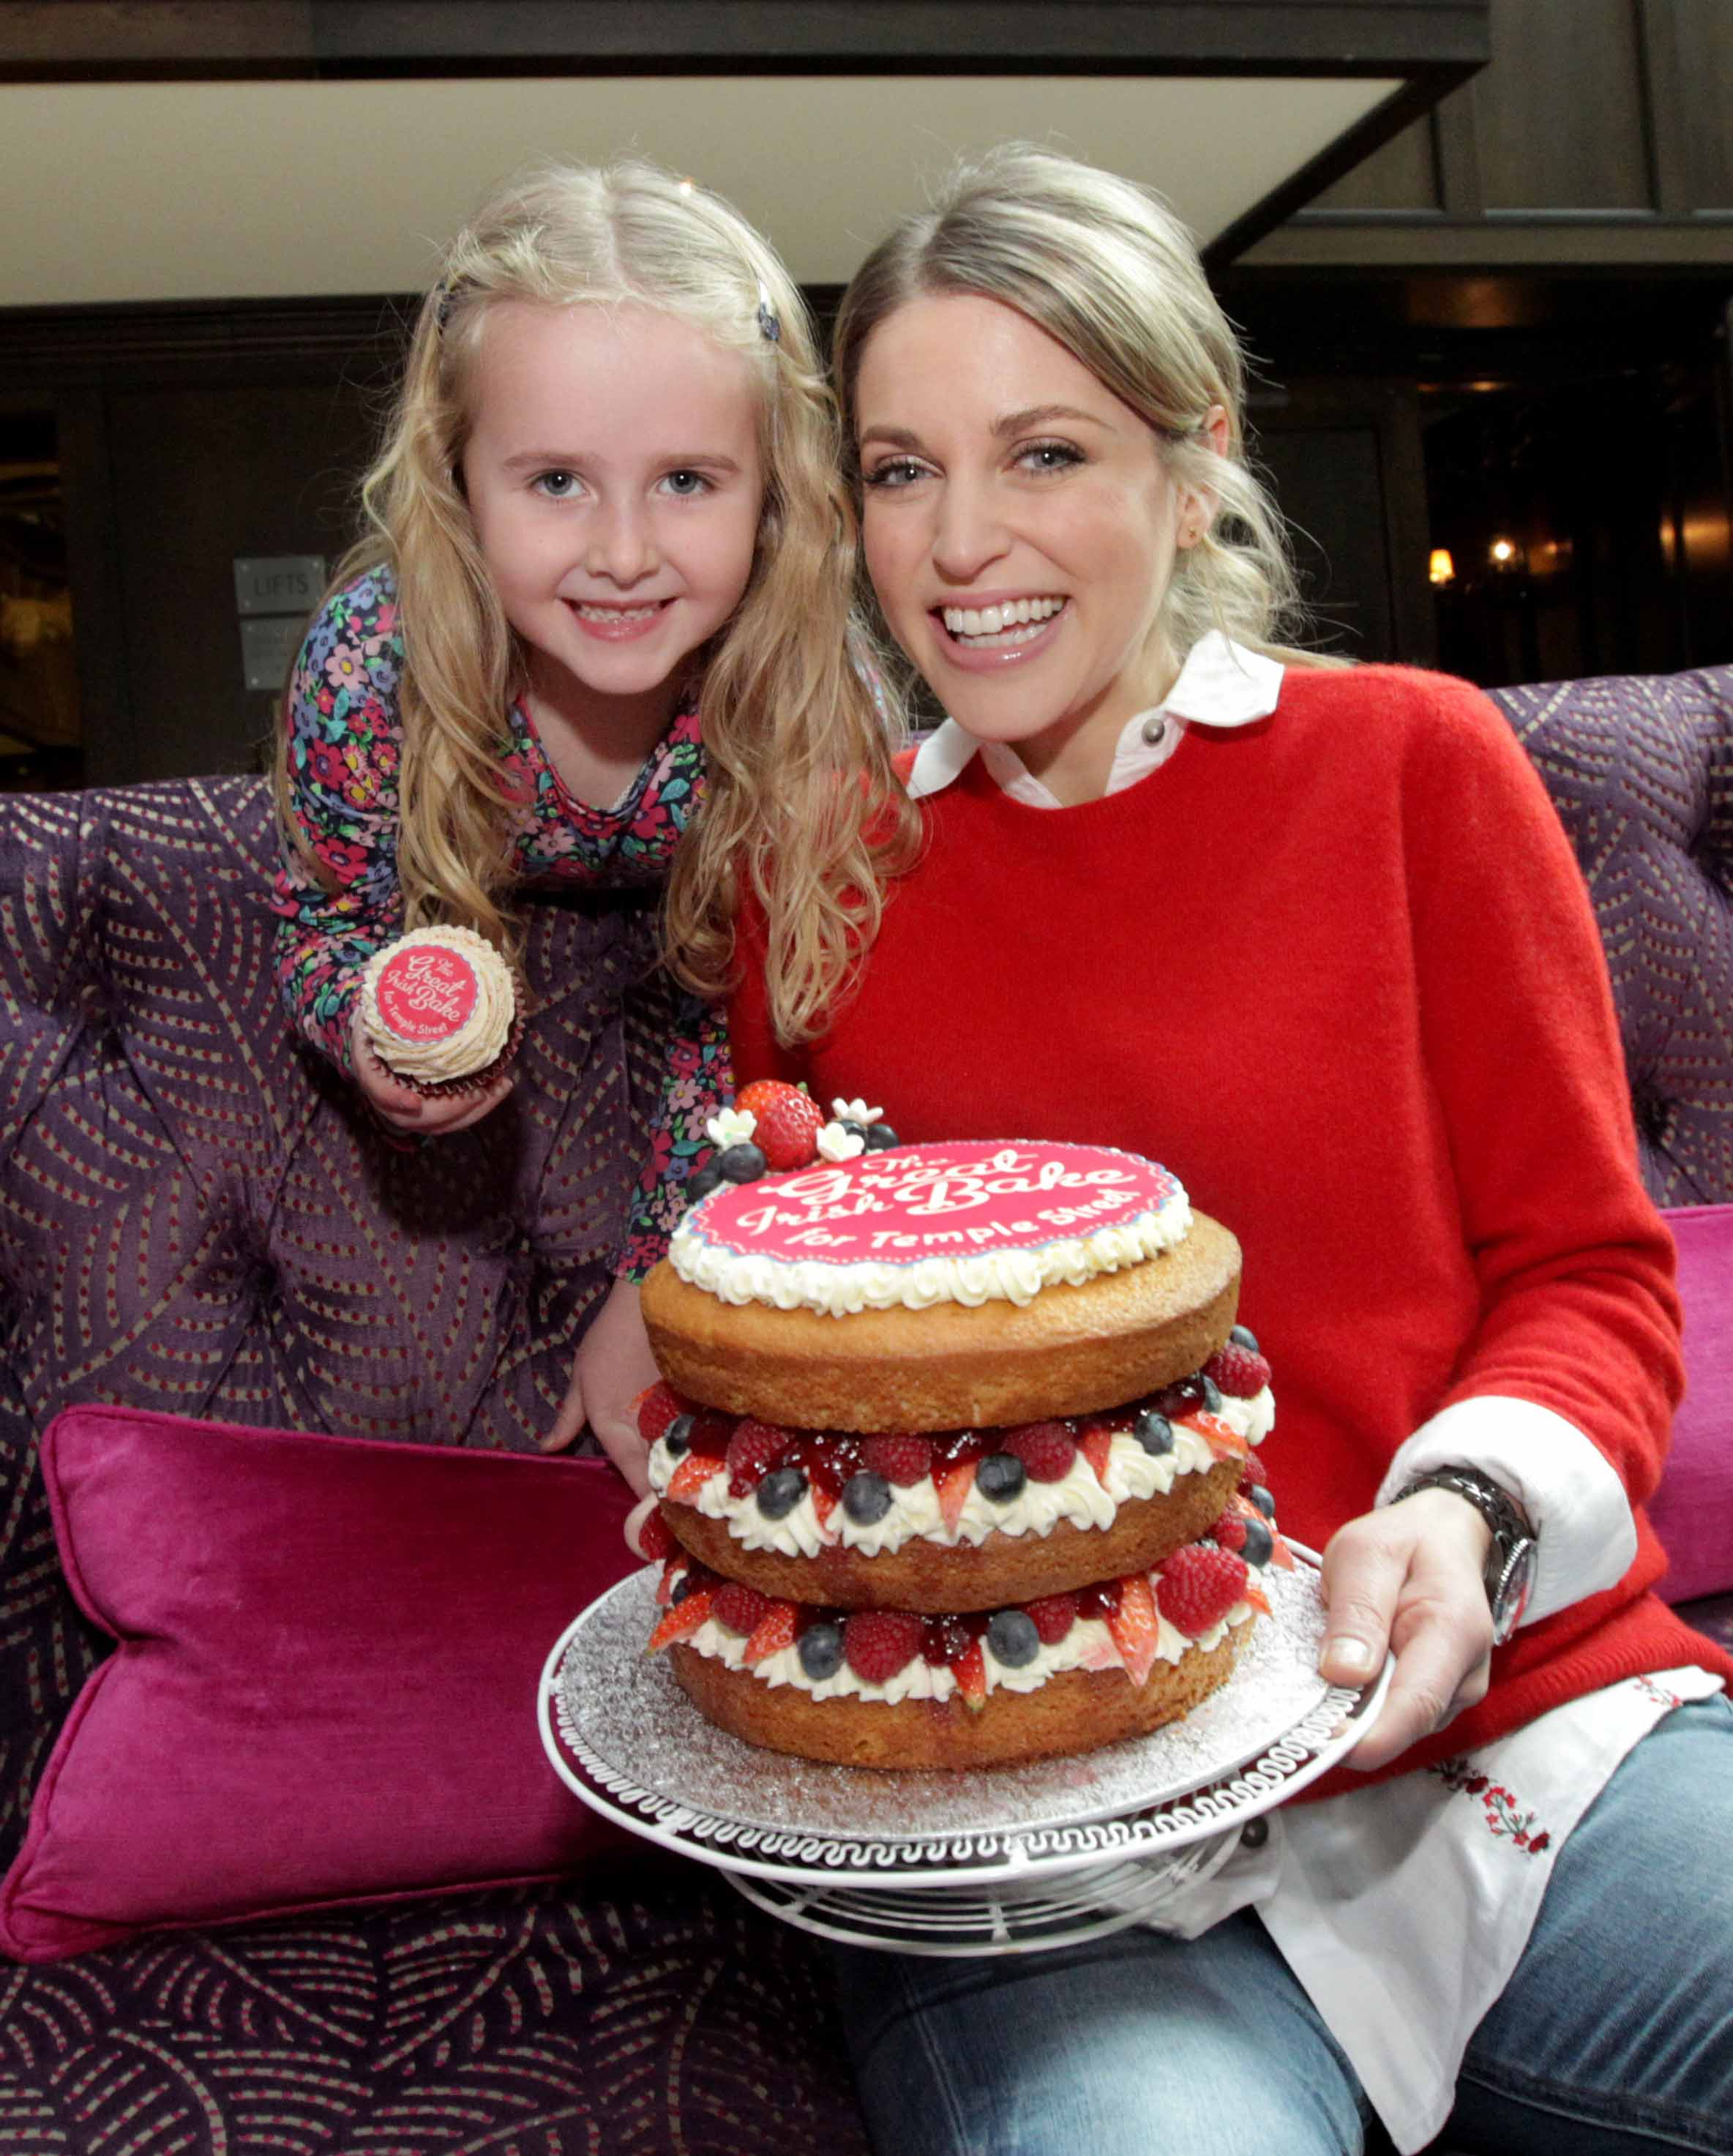 Actress and writer Amy Huberman joins six-year-old Mia McDermott to officially launch the Great Irish Bake for Temple Street.